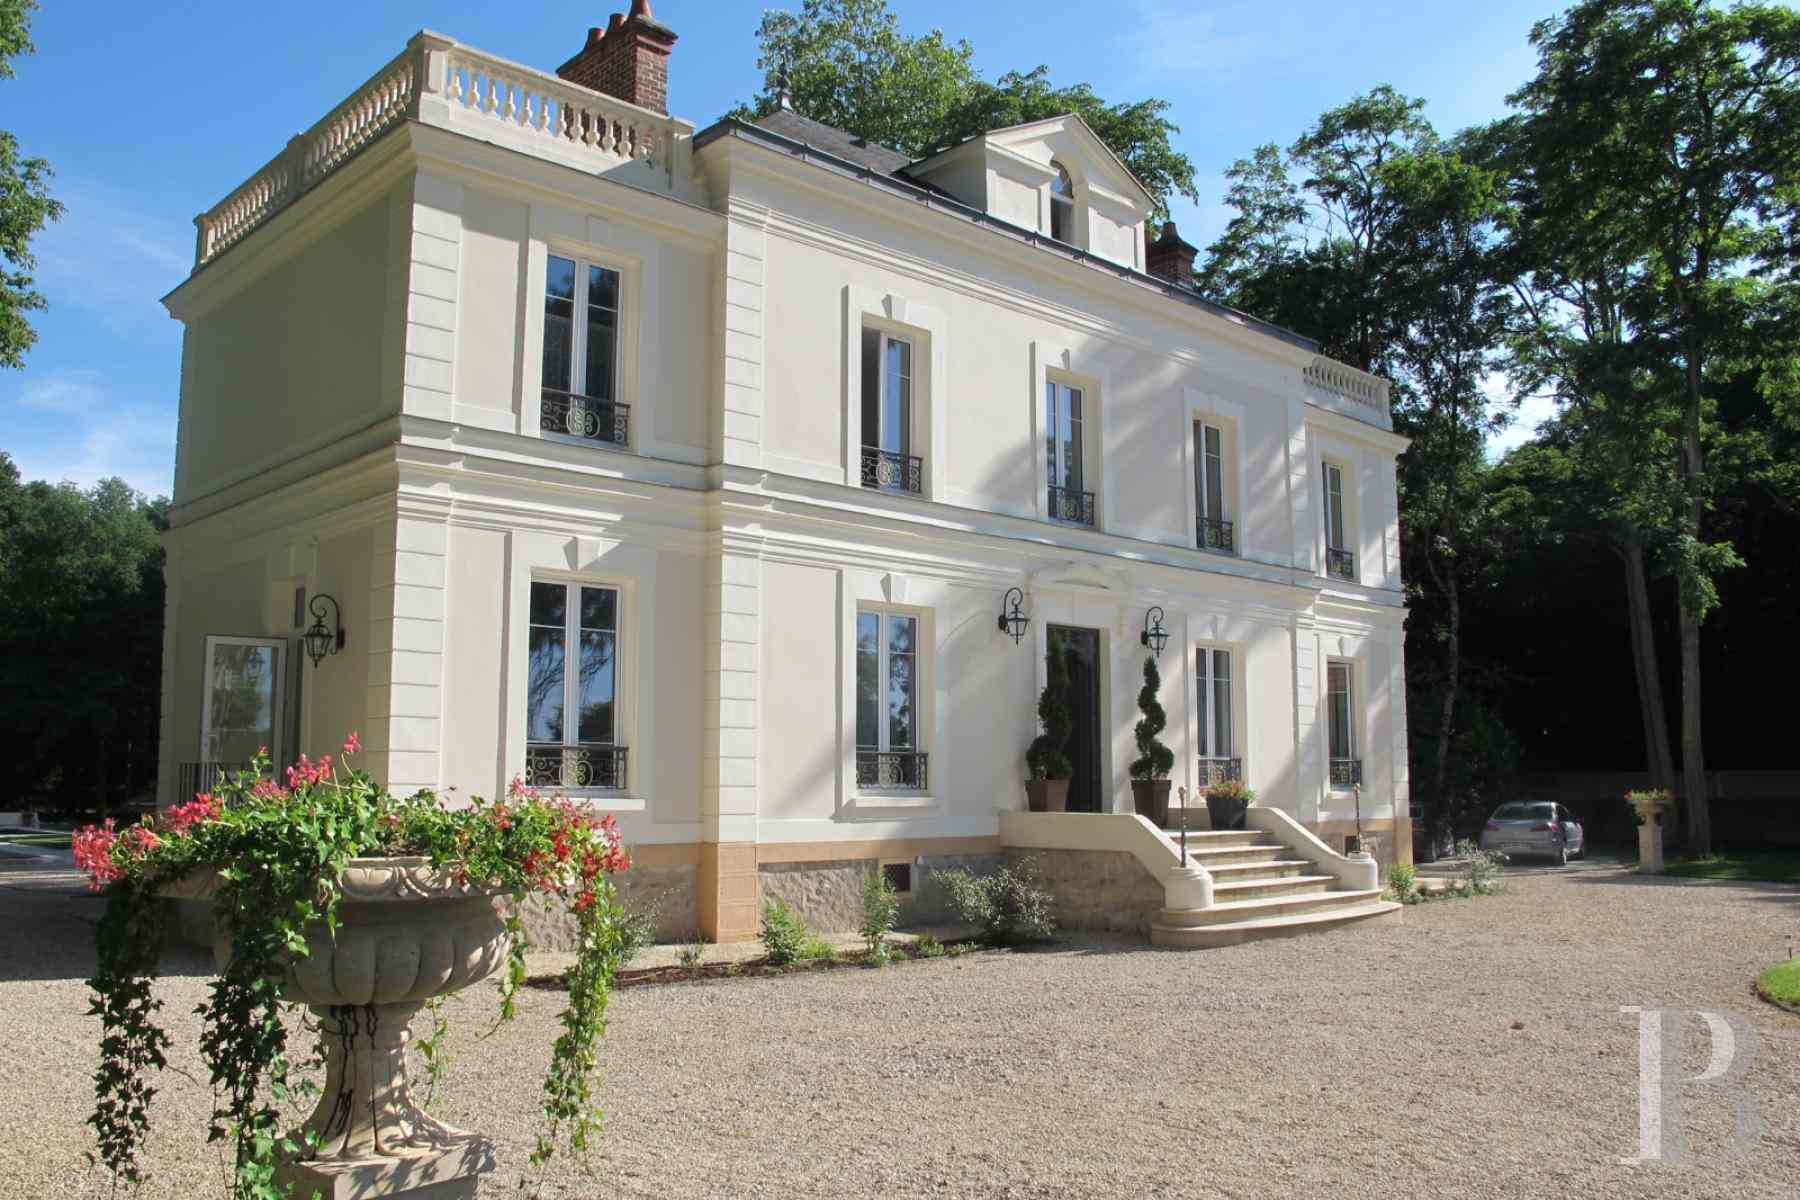 chateaux for sale France ile de france hunting lodge - 3 zoom